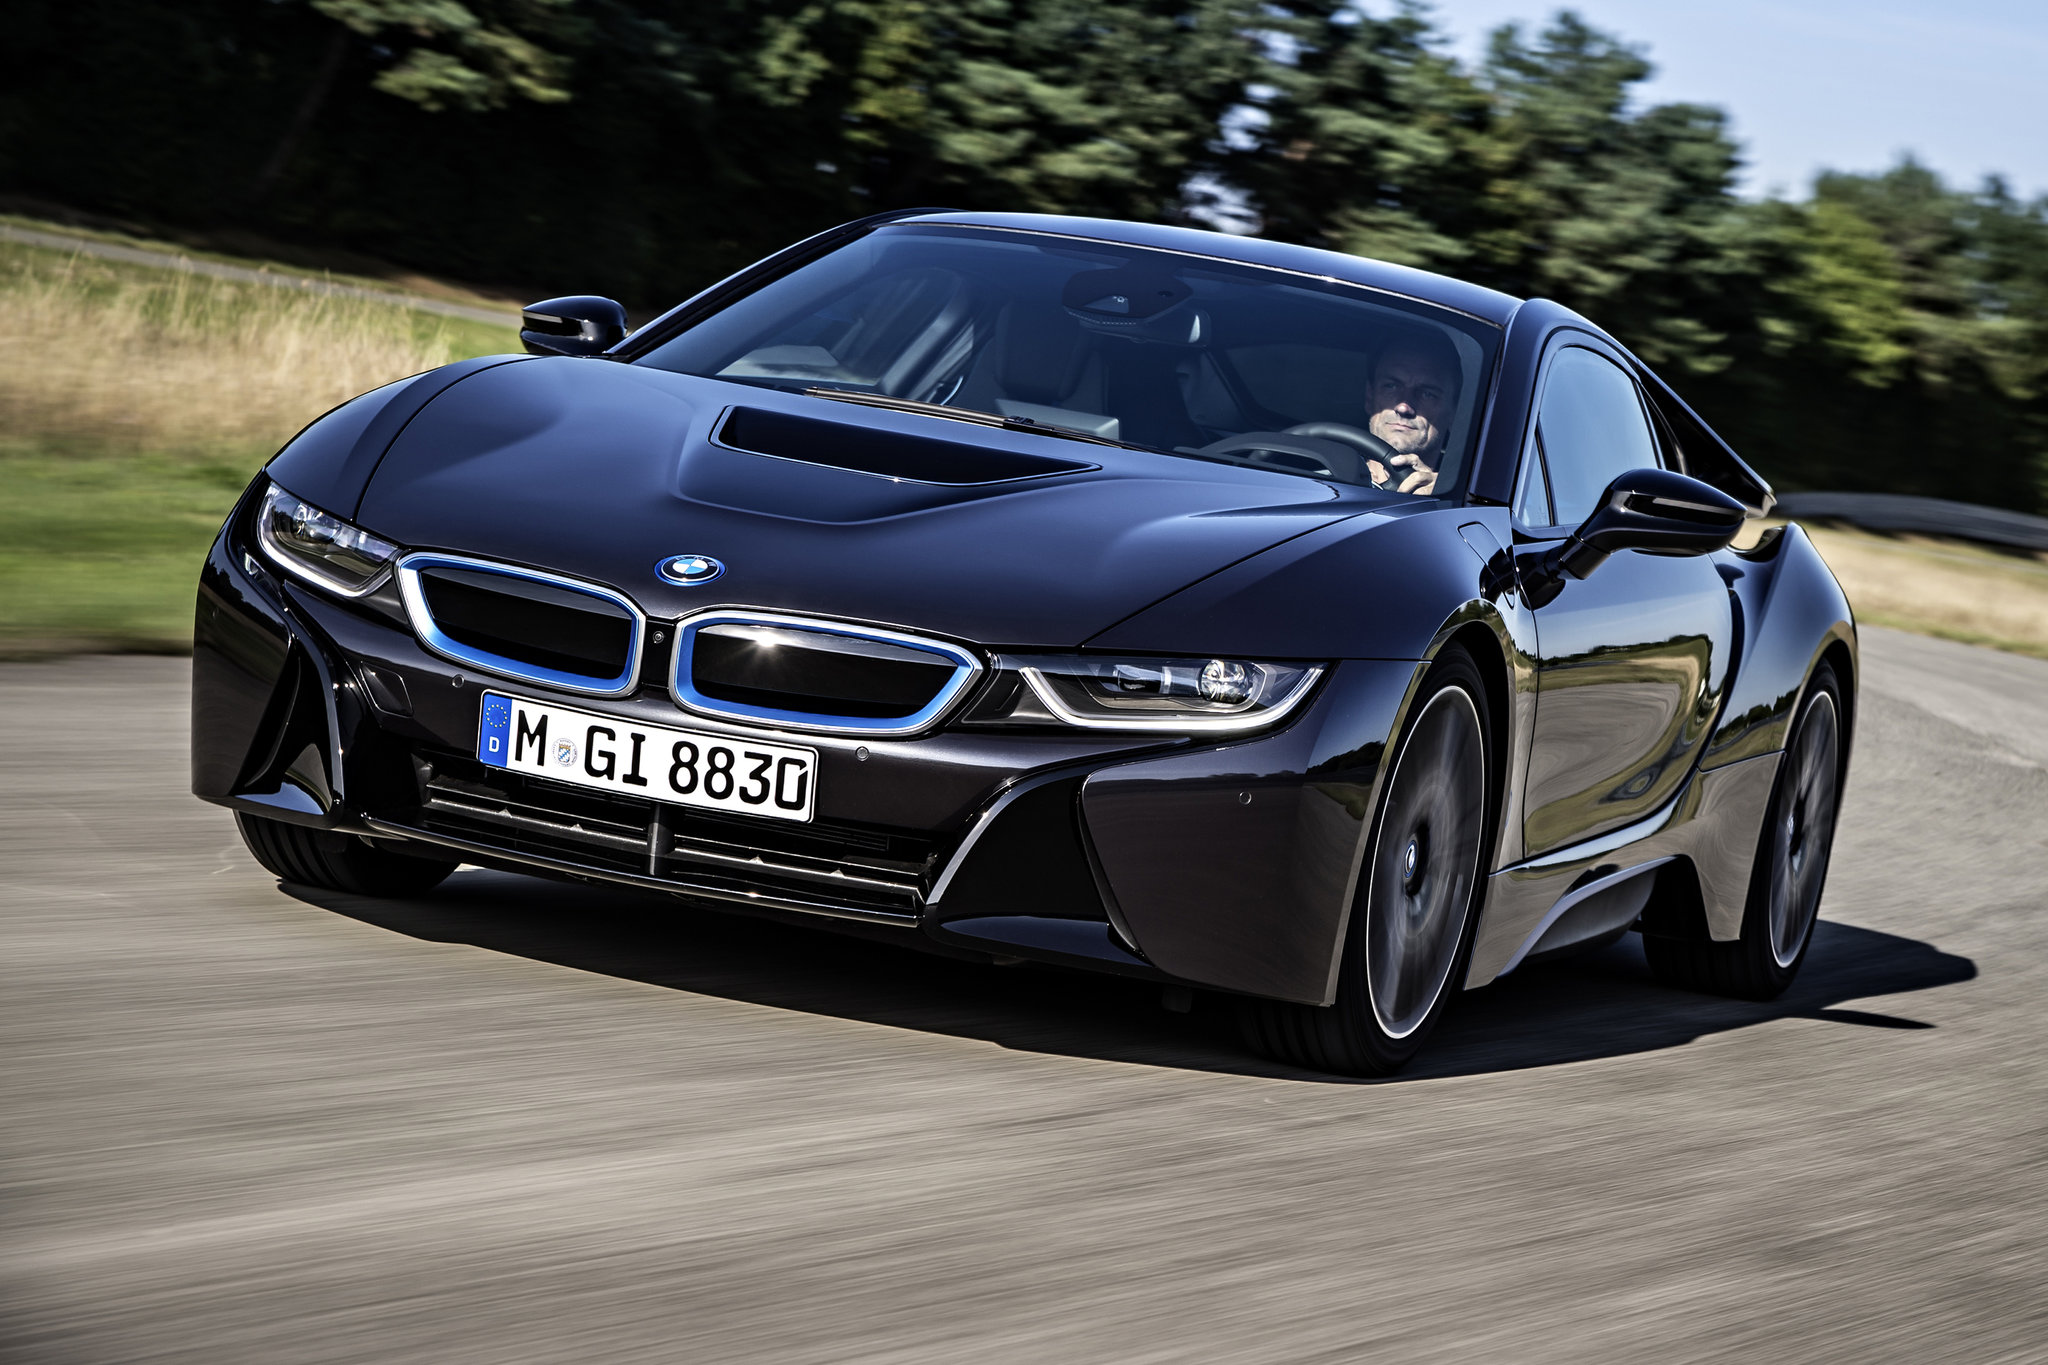 One does not simply categorize BMW i8